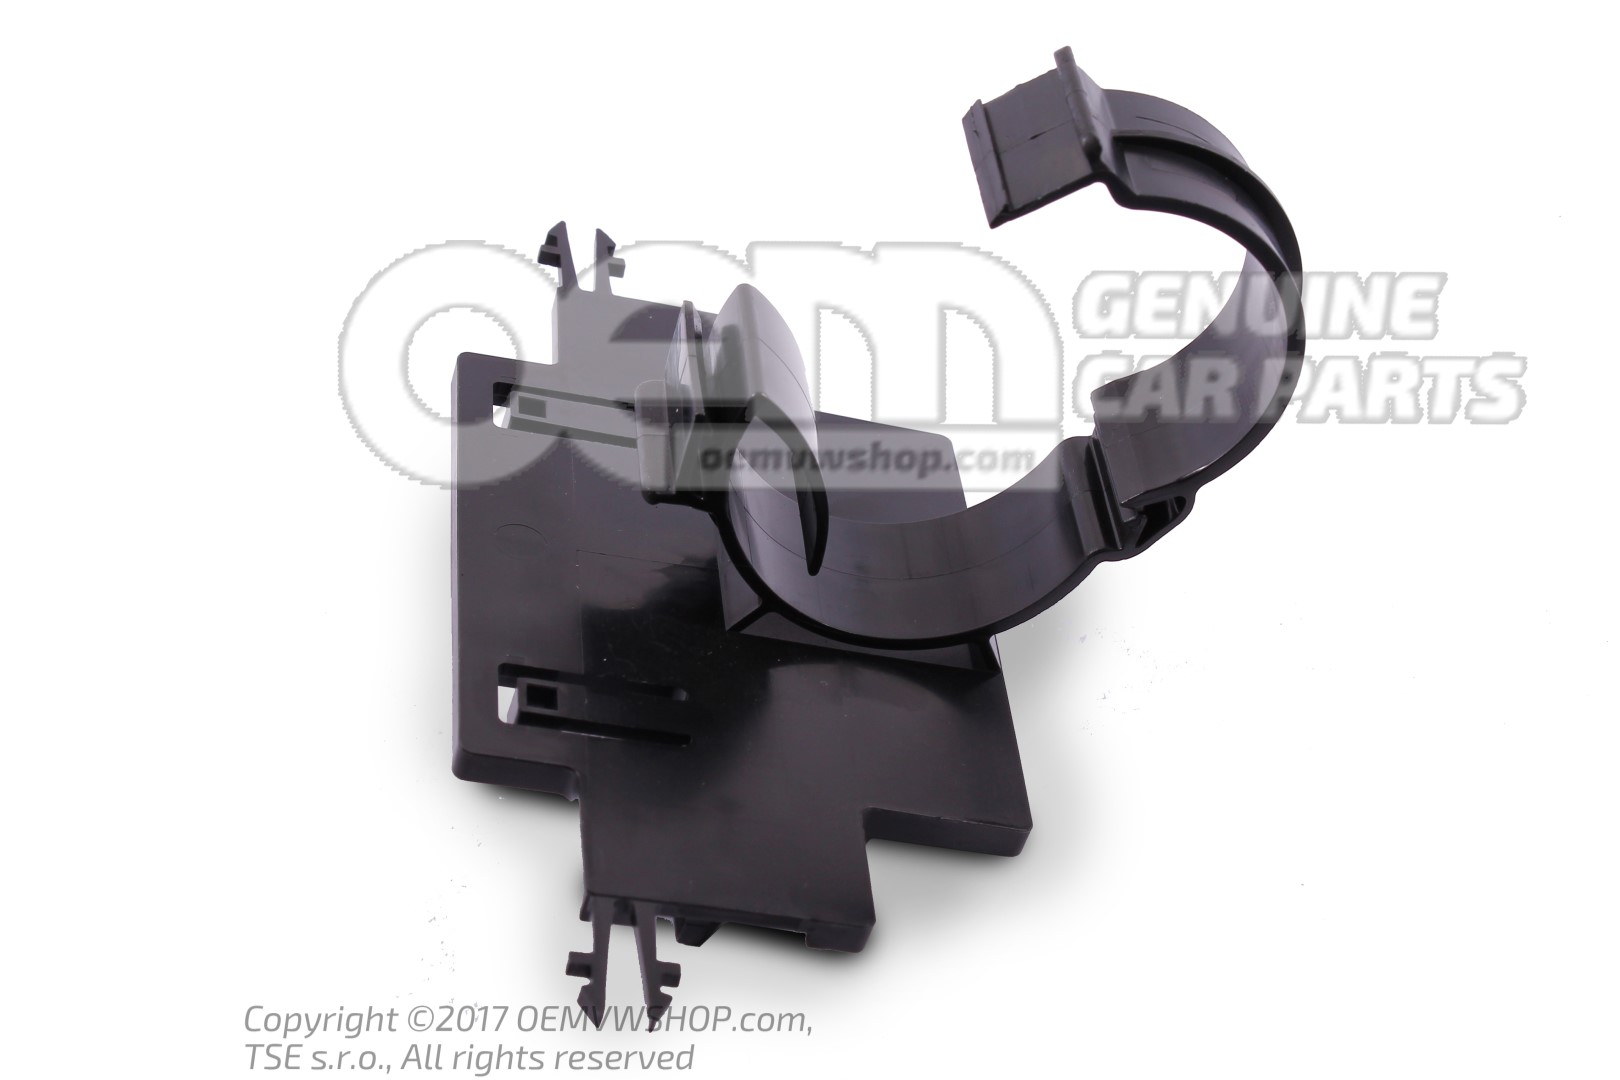 2004 pontiac sunfire stereo wiring harness holder for wiring harness 6r0971845k | oemvwshop.com #12